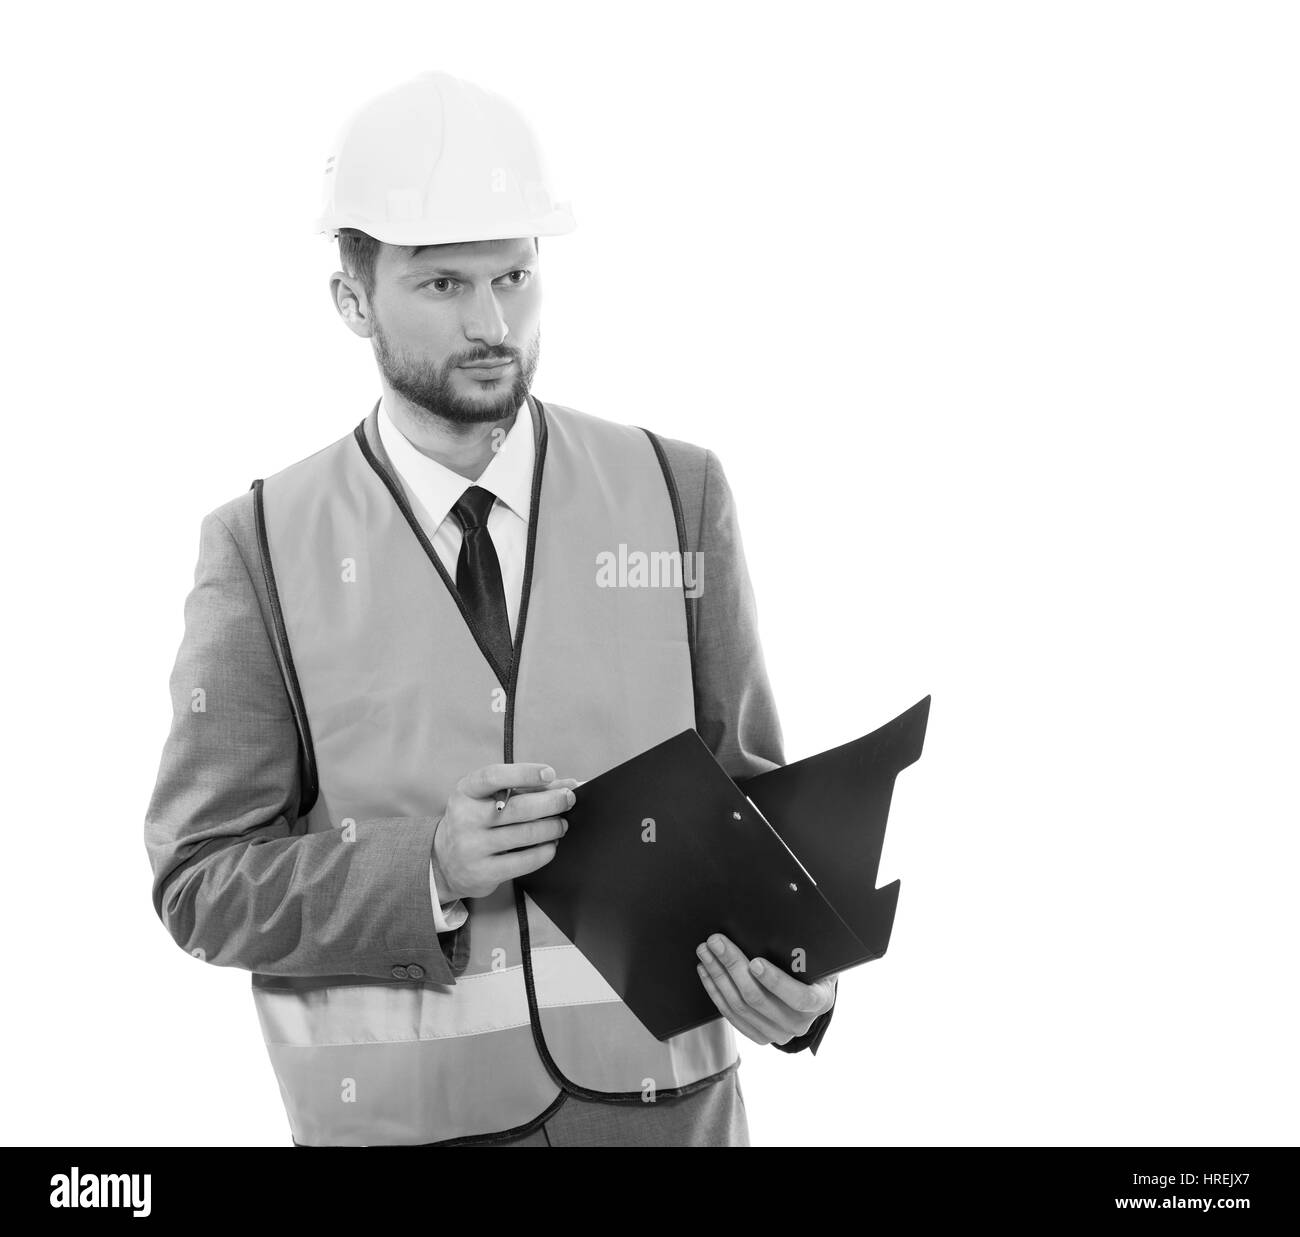 Businessperson on work. Monochrome shot of a businessman constructionist wearing protective helmet and safety vest - Stock Image